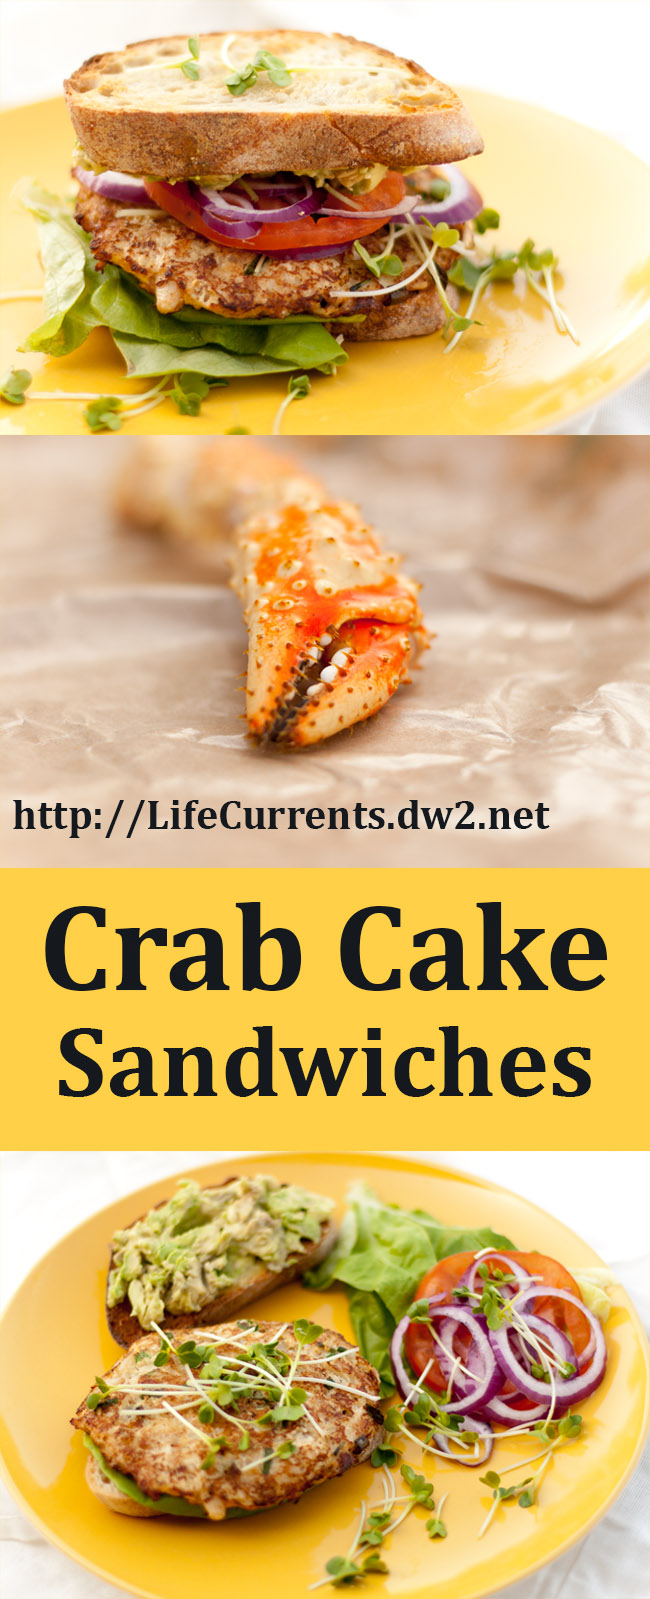 Crab Cake Sandwiches - Serve warm crab cakes on toasted sourdough bread